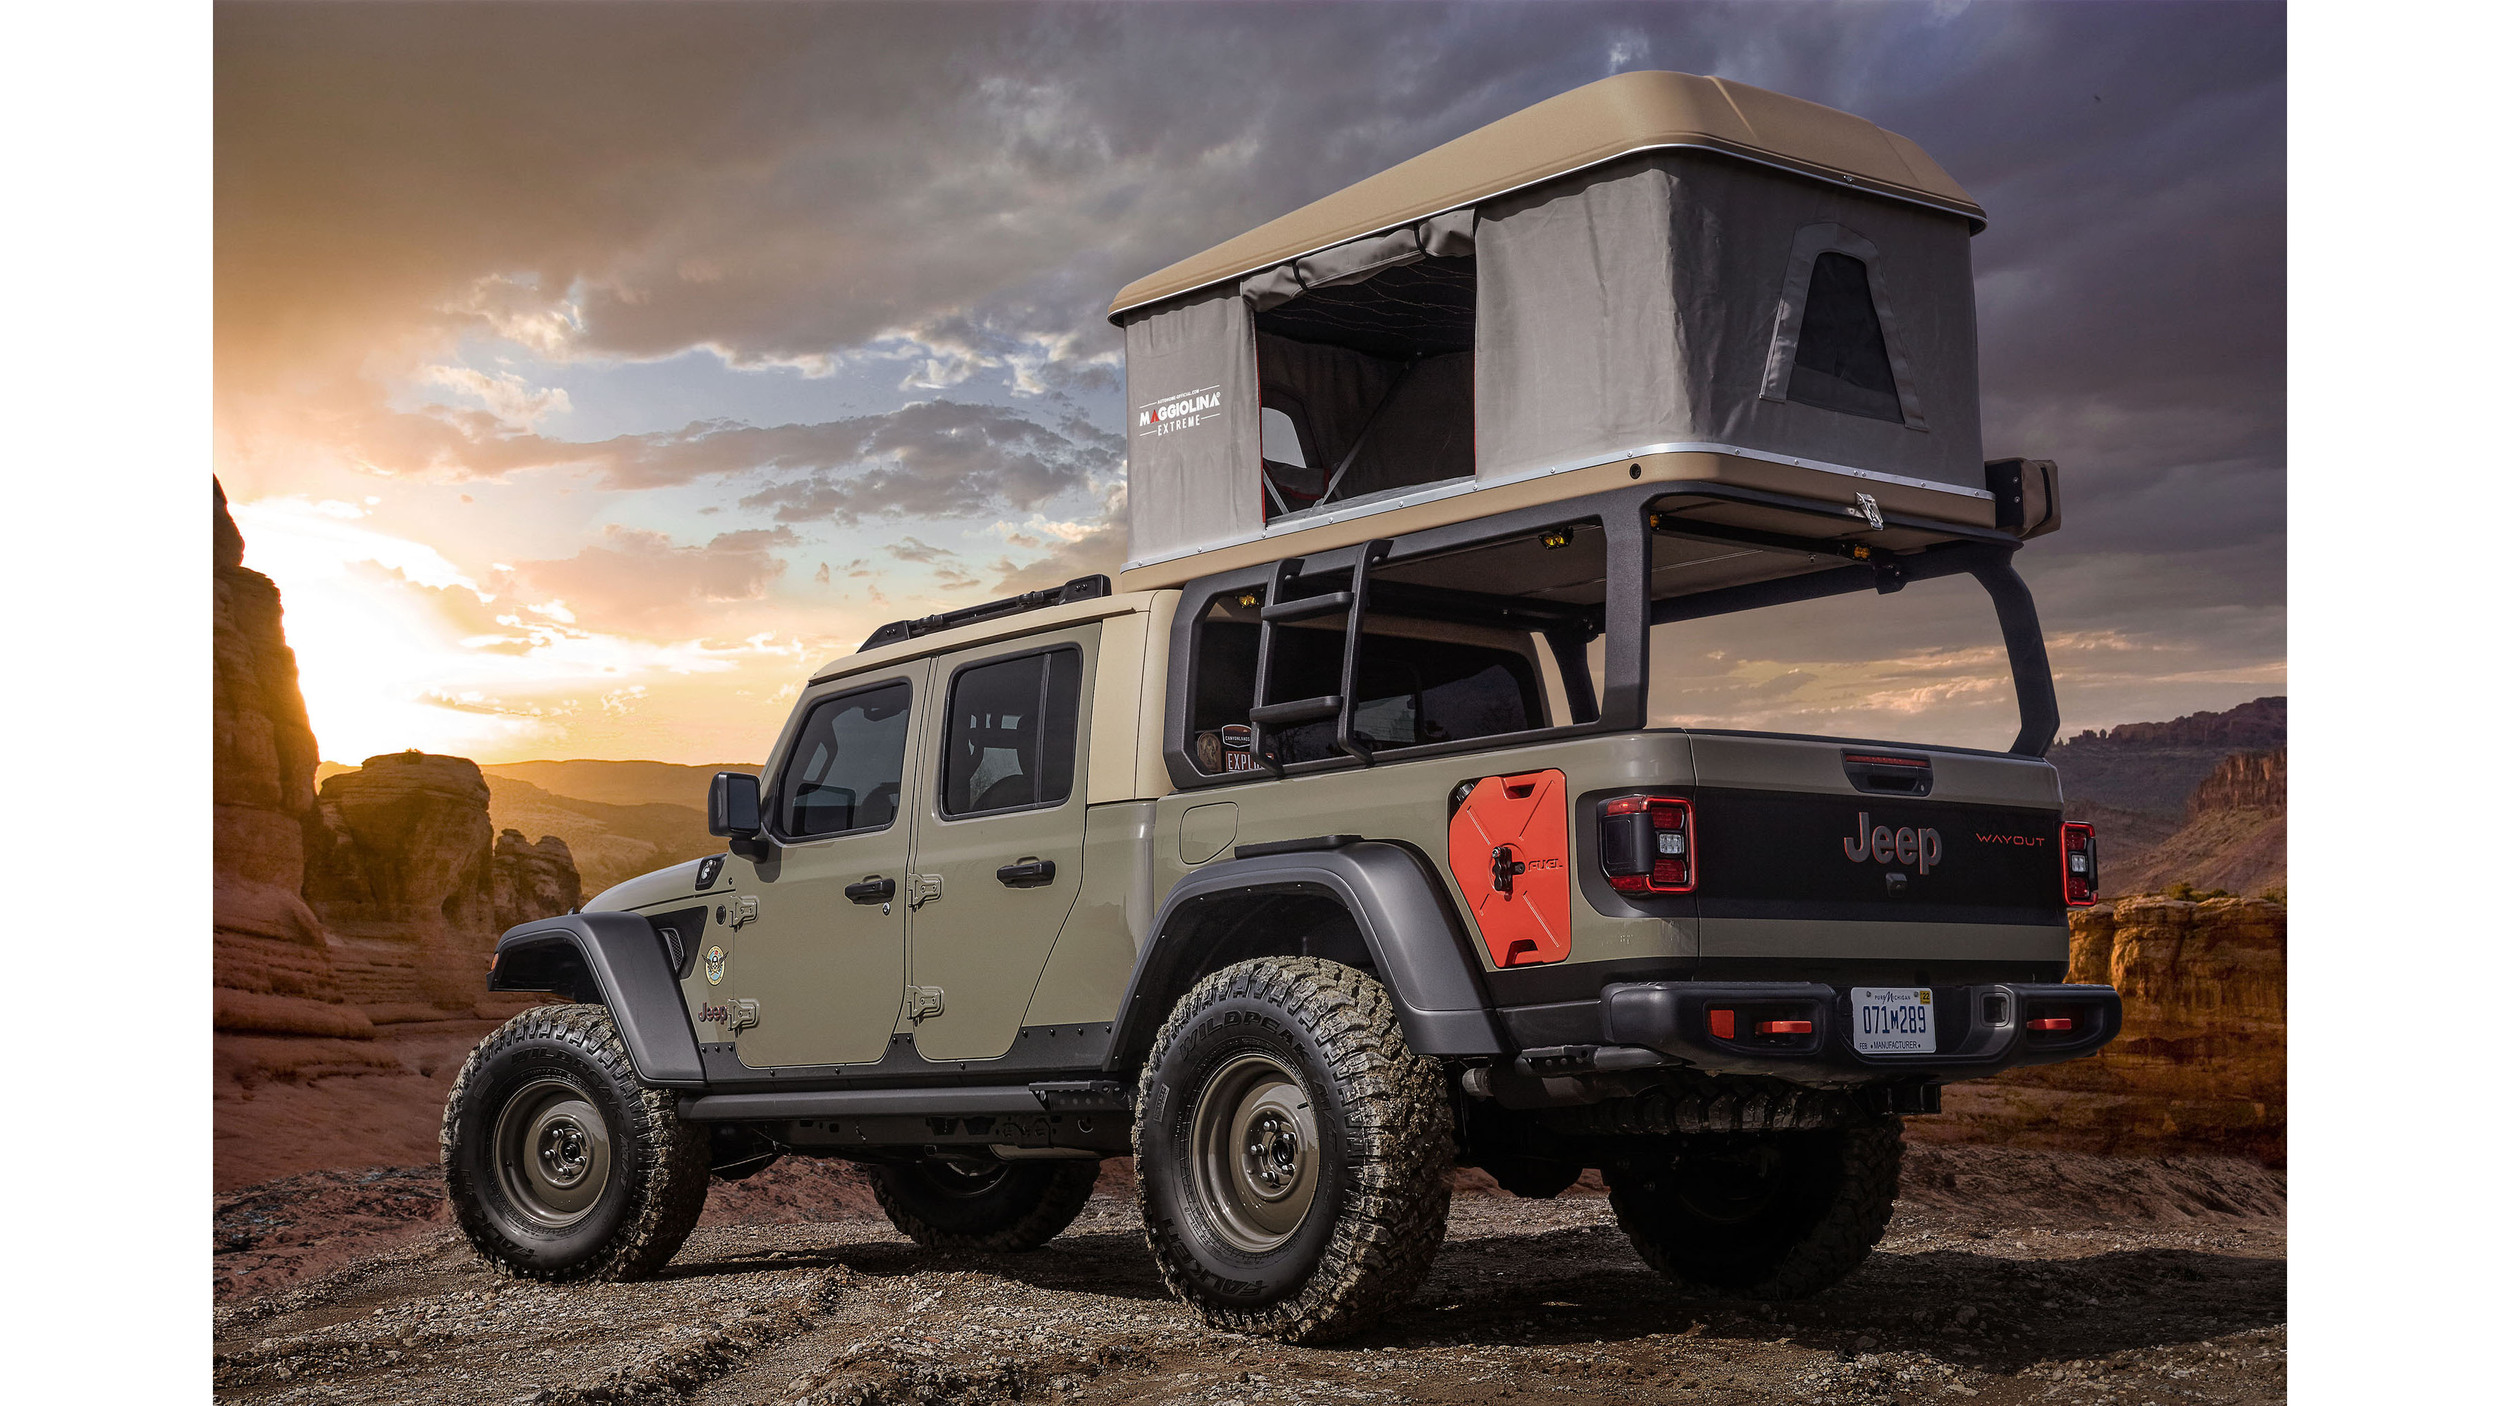 Gladiator Front And Center As 2019 Jeep Moab Easter Safari